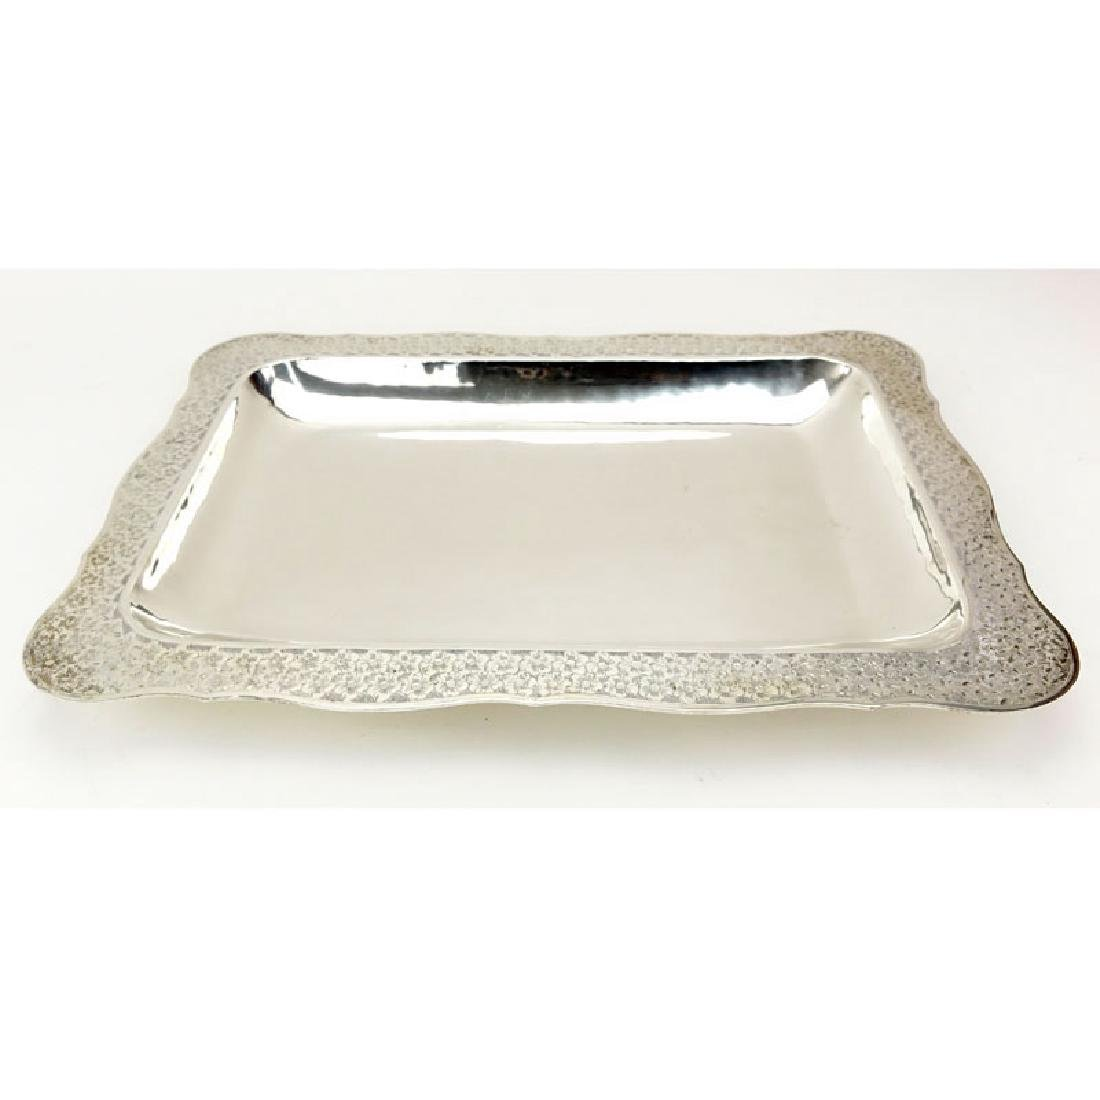 Colombian Florentina 900 Silver Tray. Chased floral - 2